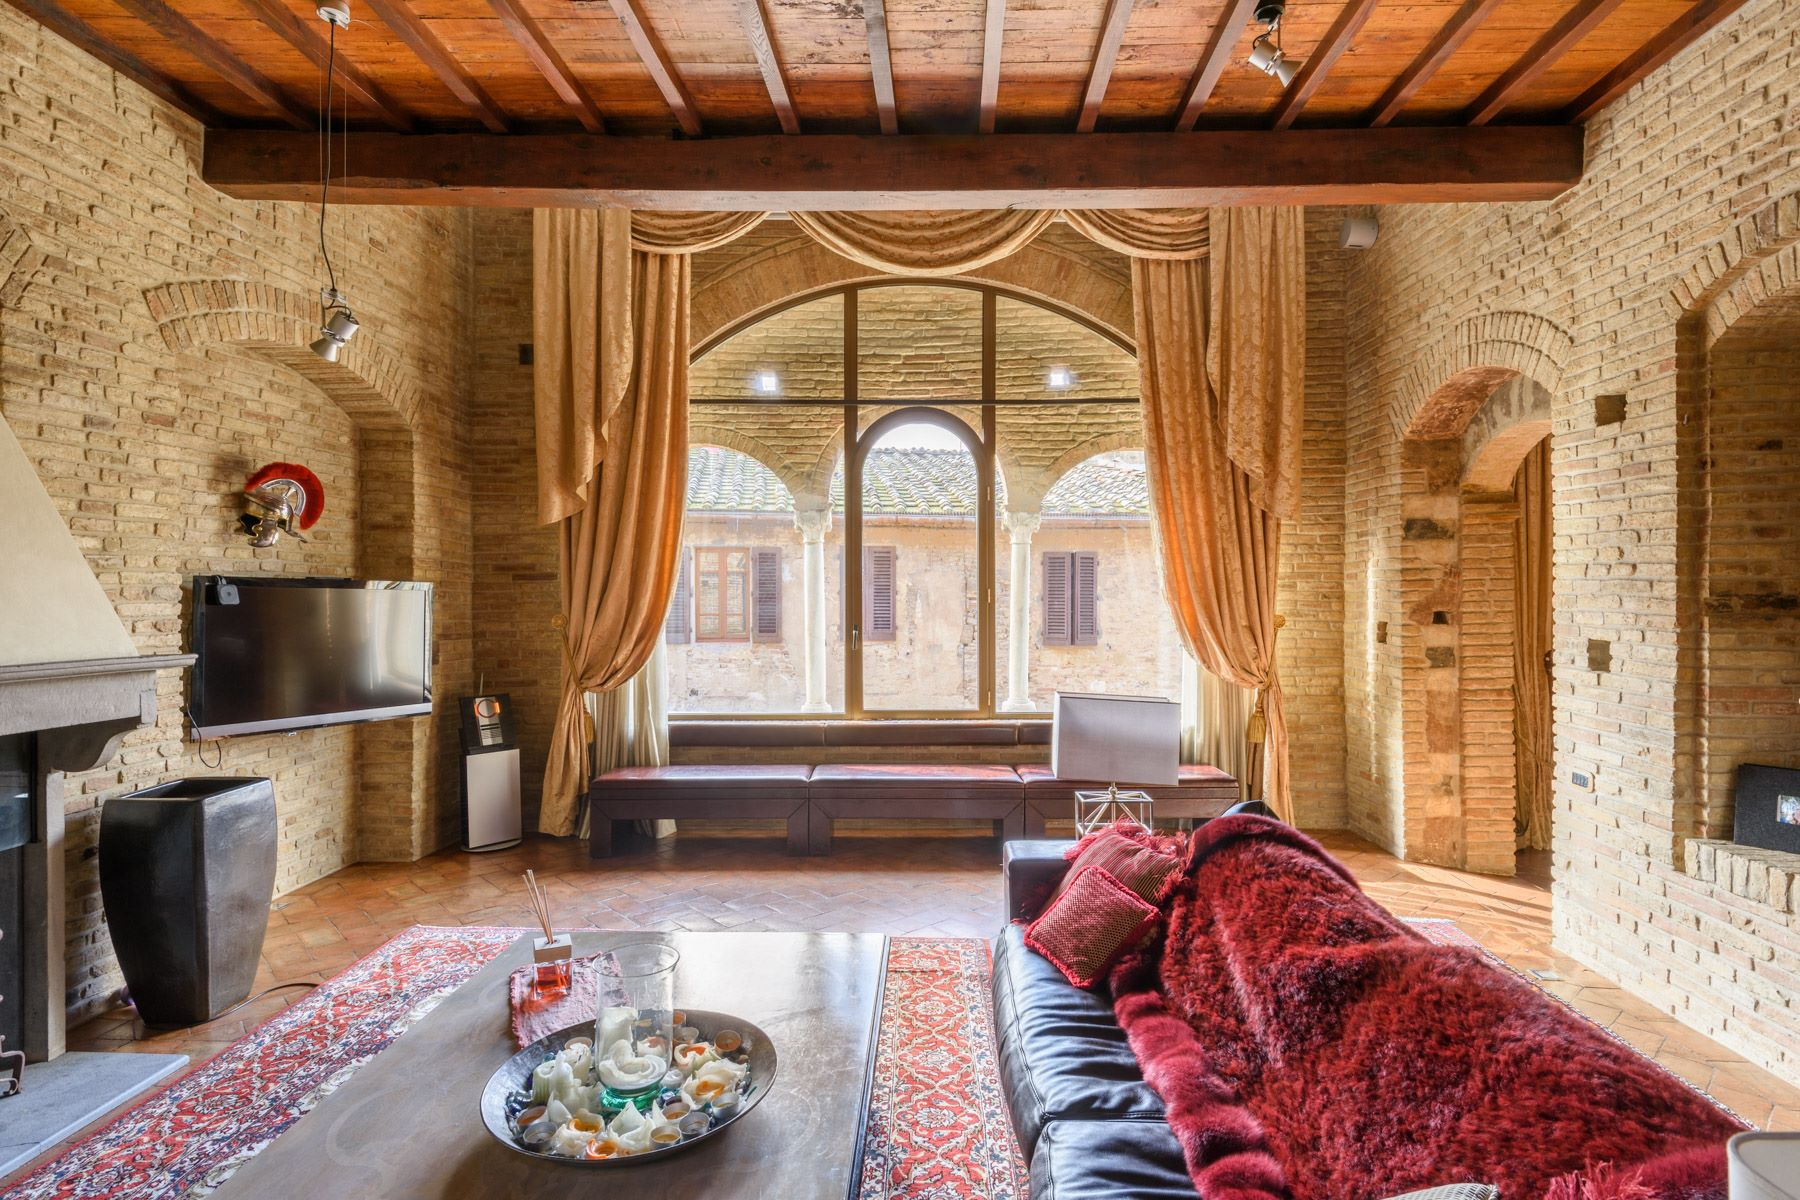 Apartment for Sale at Medieval Tower in the center of San Gimignano Vicolo delle Vergini San Gimignano, Siena 53037 Italy